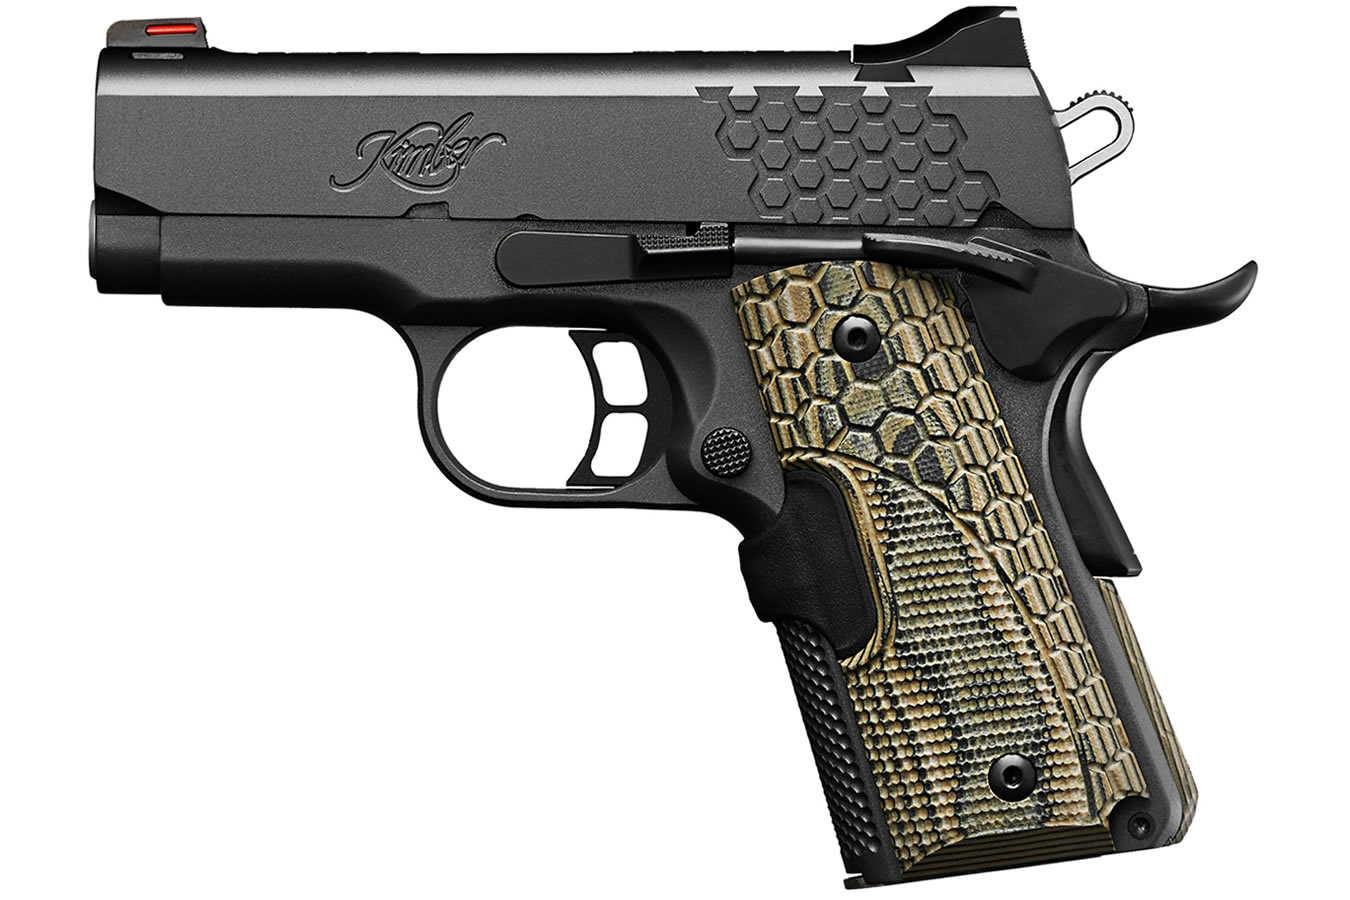 KHX ULTRA 45 ACP W/ LASER ENHANCED GRIPS